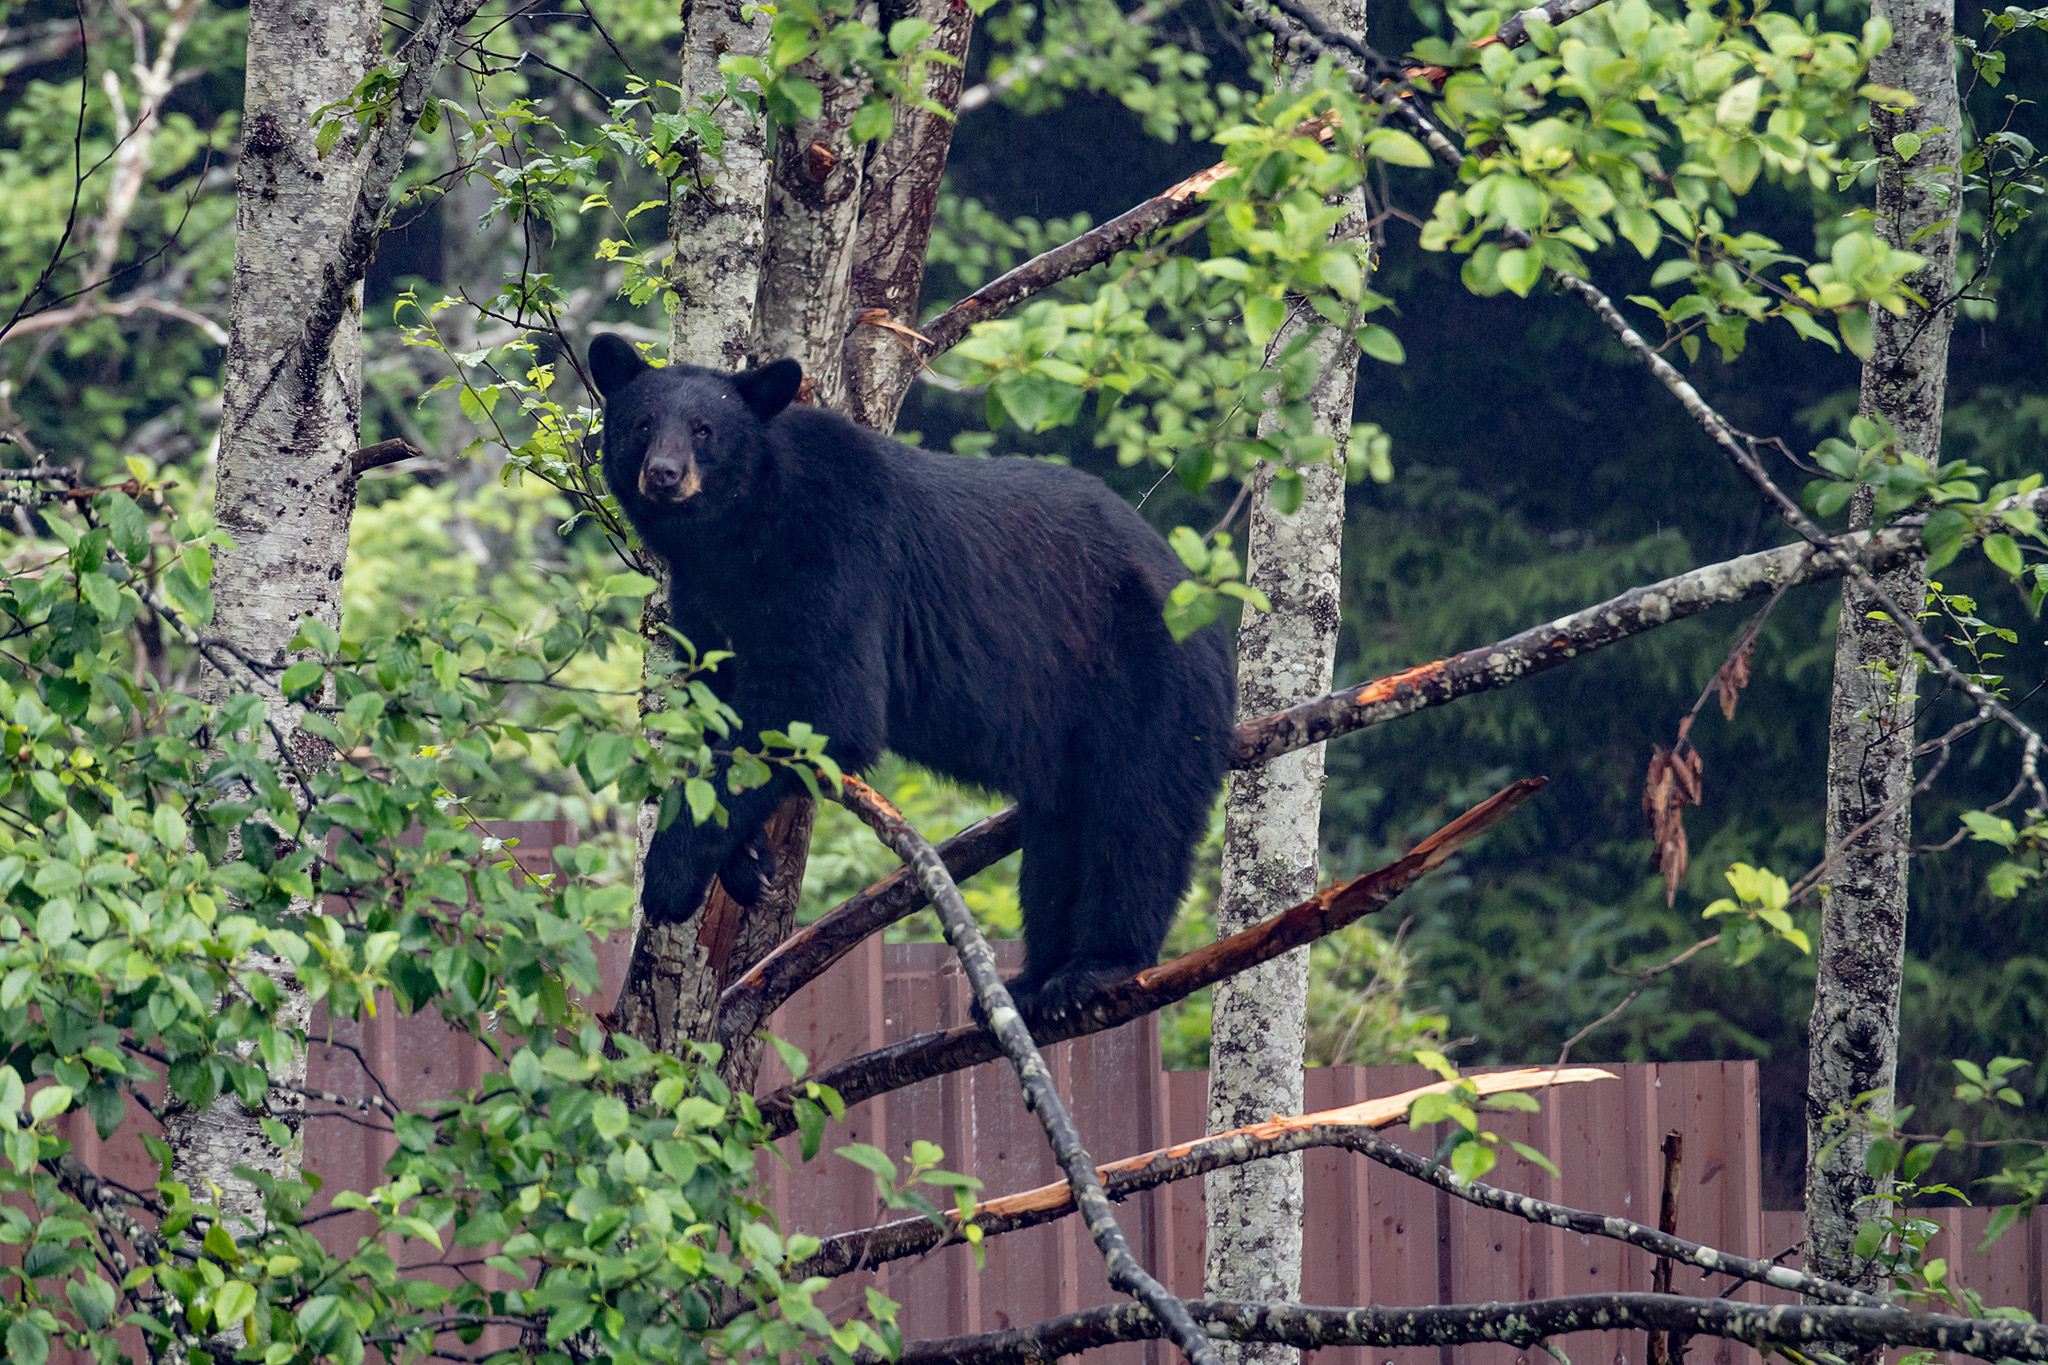 Smokey climbs a tree to get a better look down on the coastal brown bears in another enclosure.